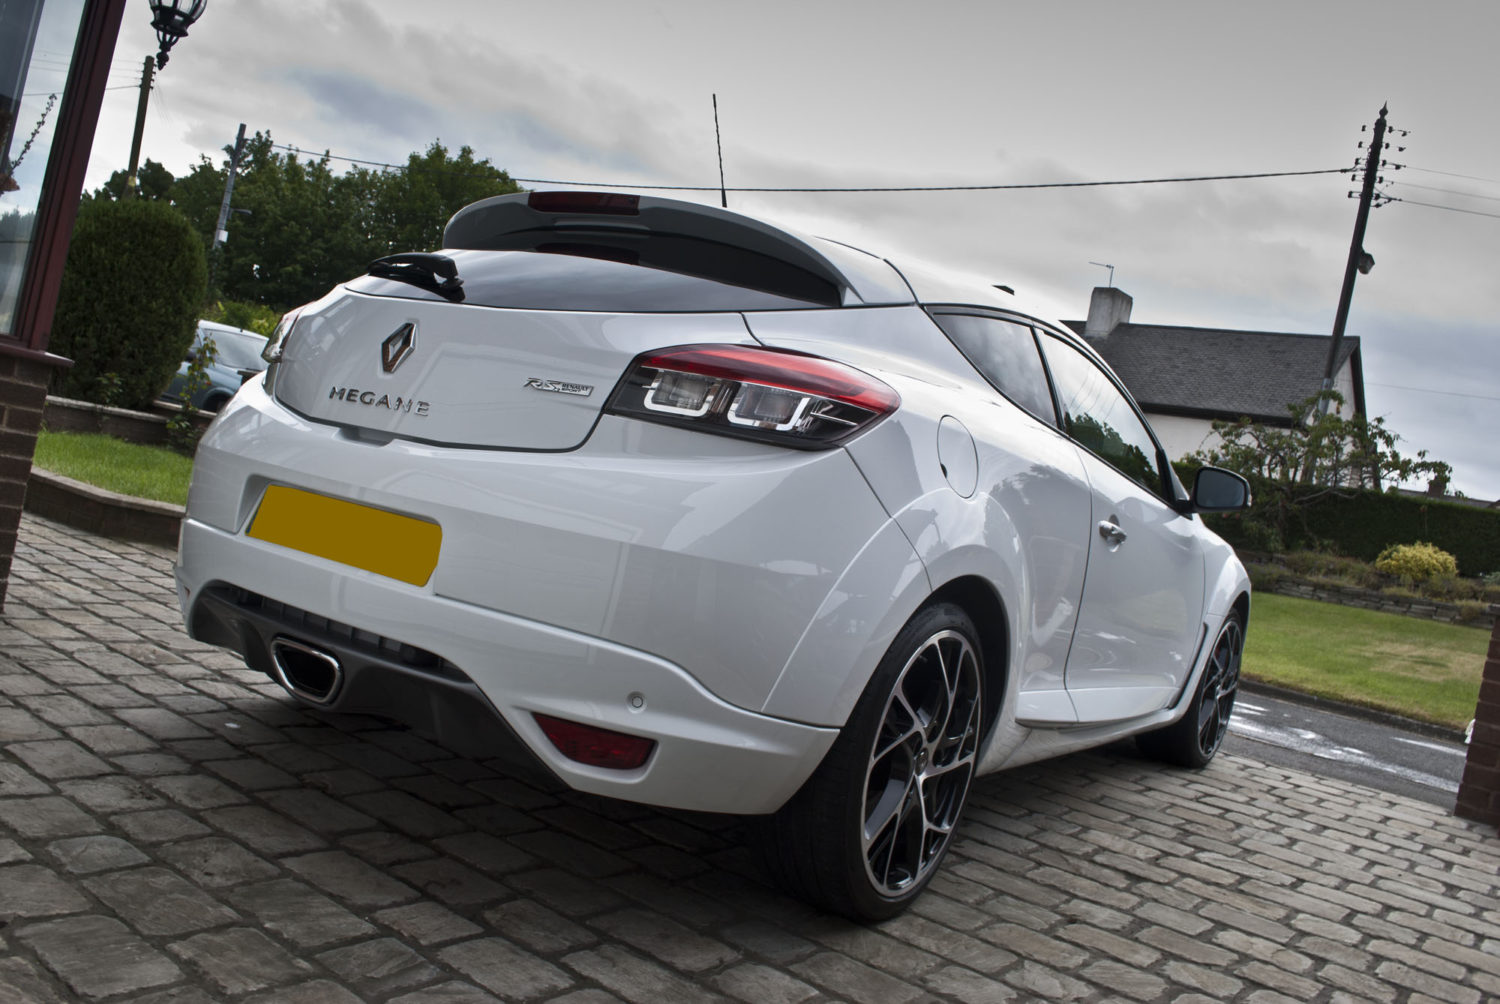 Renault Megane RS Detailed by DWR Detailing